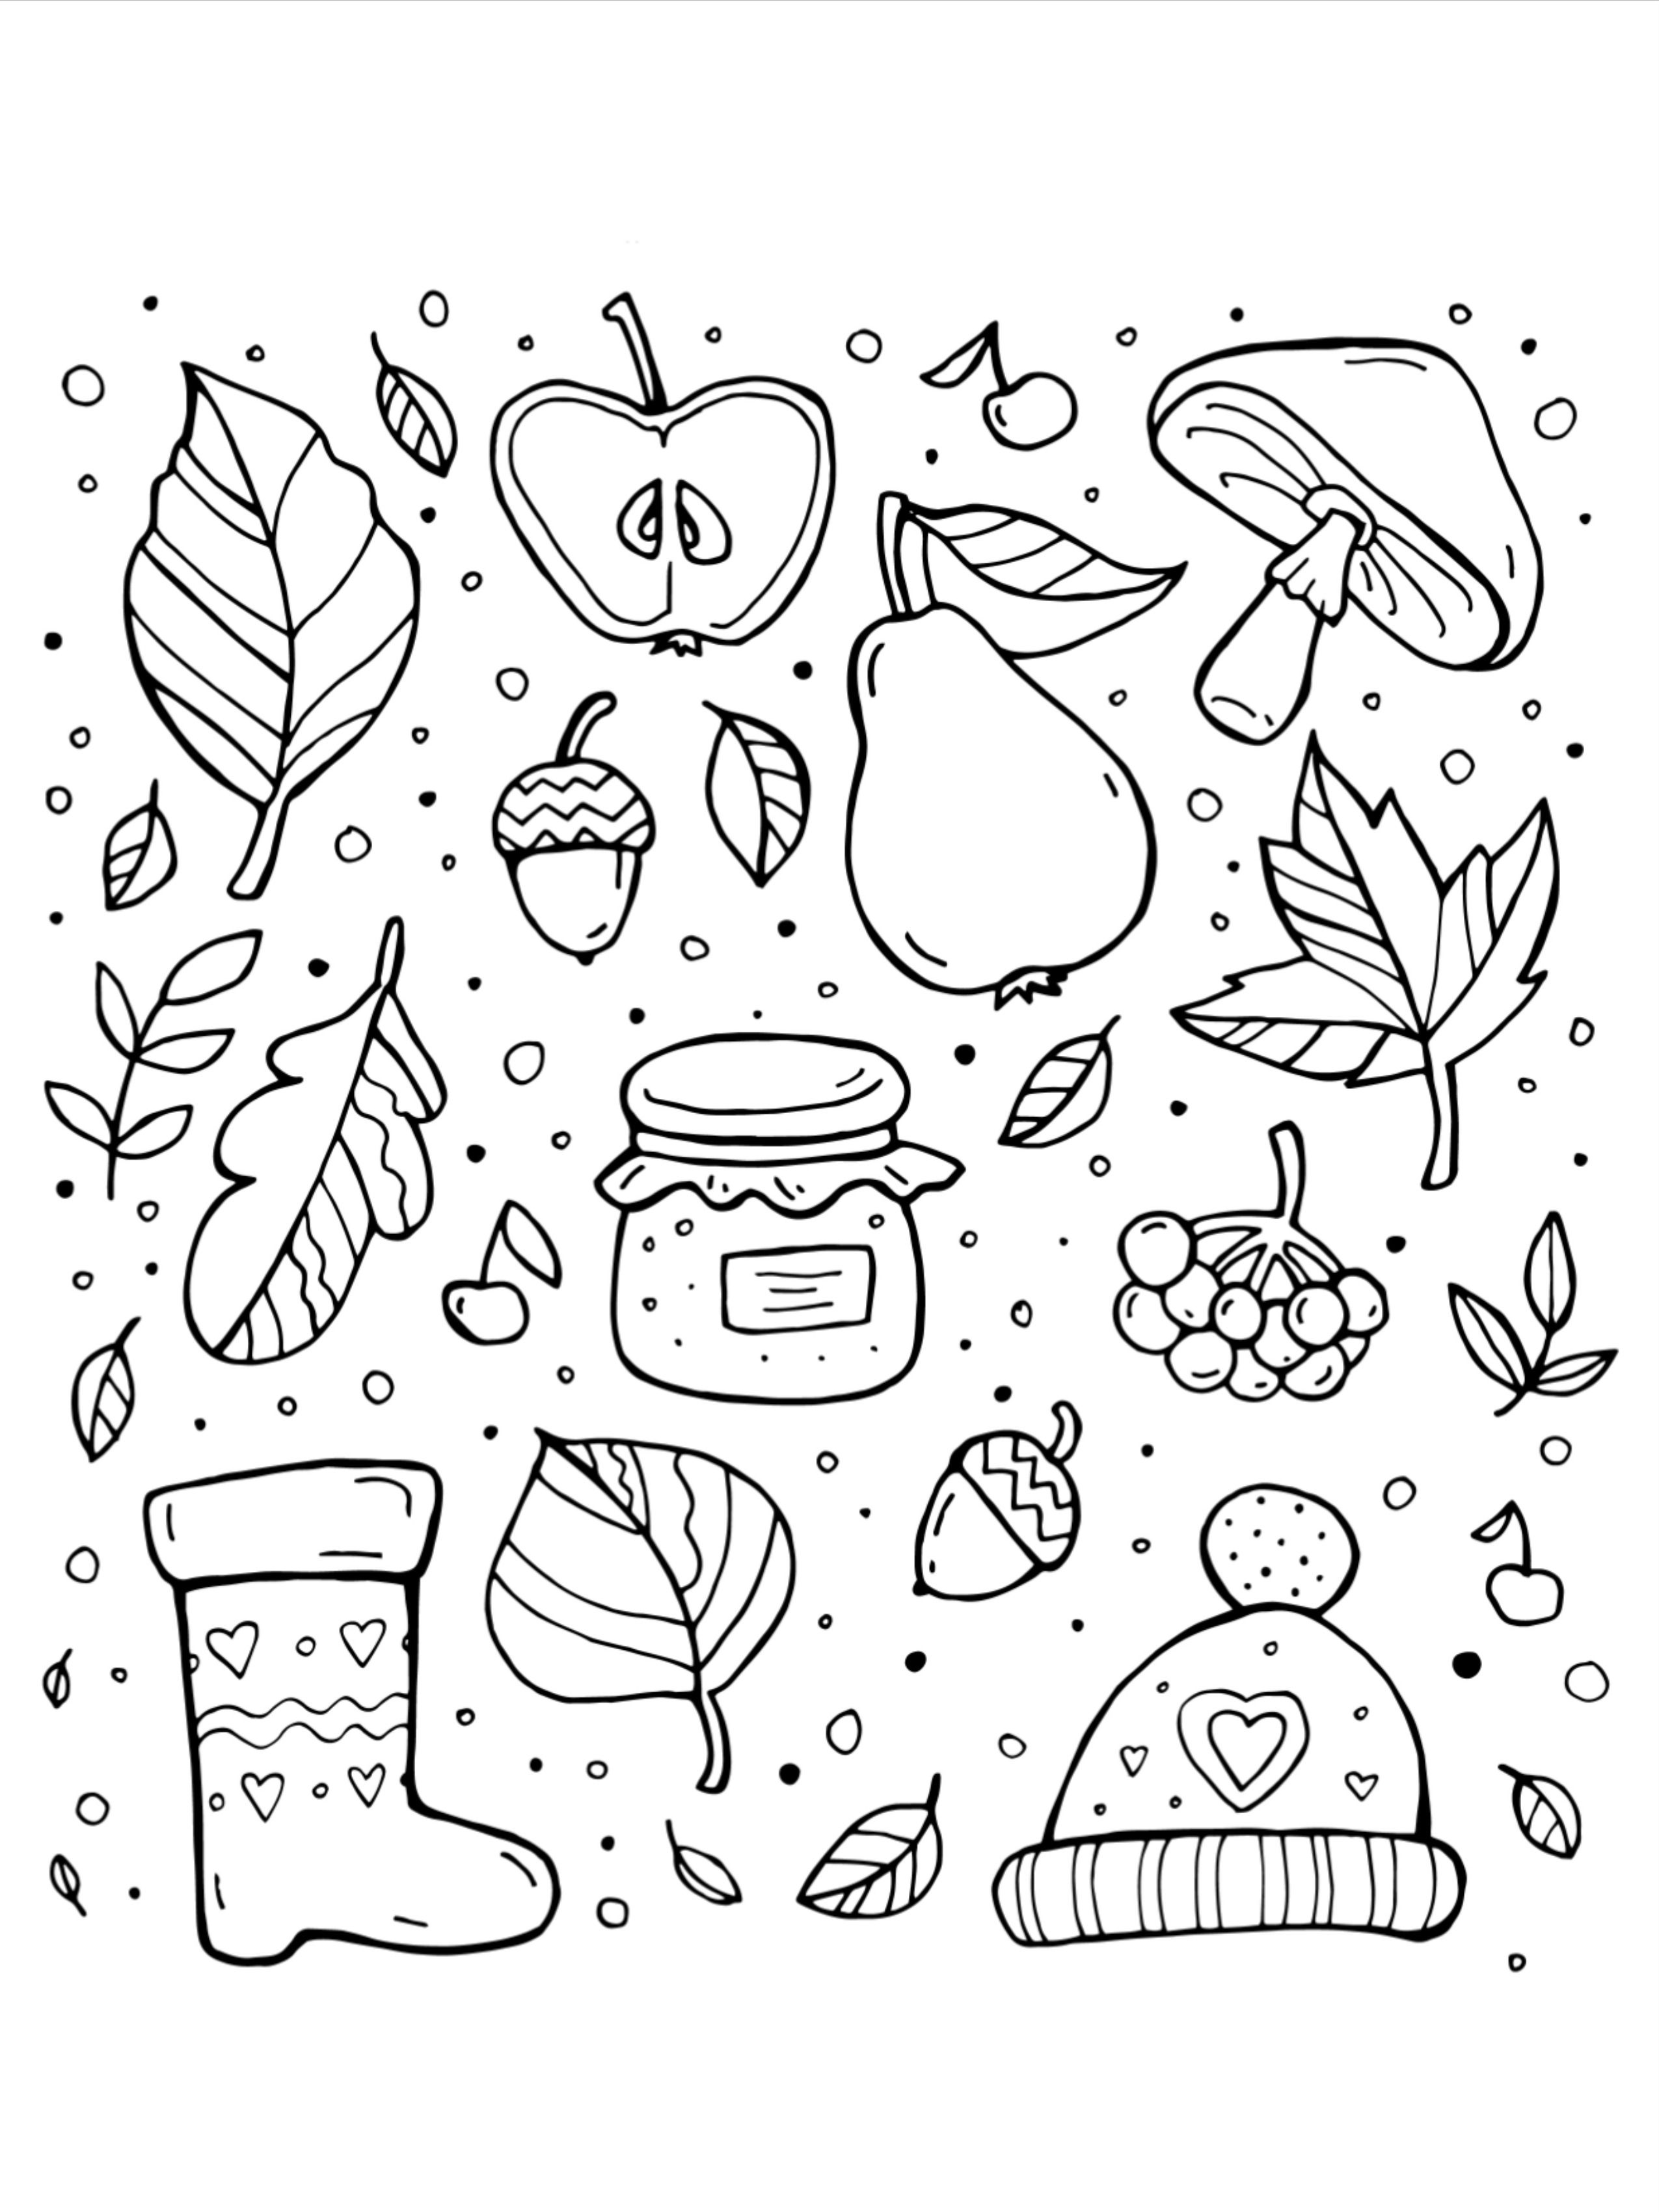 50 Fall Coloring Pages For Kids Fall Coloring Pages Coloring Pages For Kids Printables Free Kids